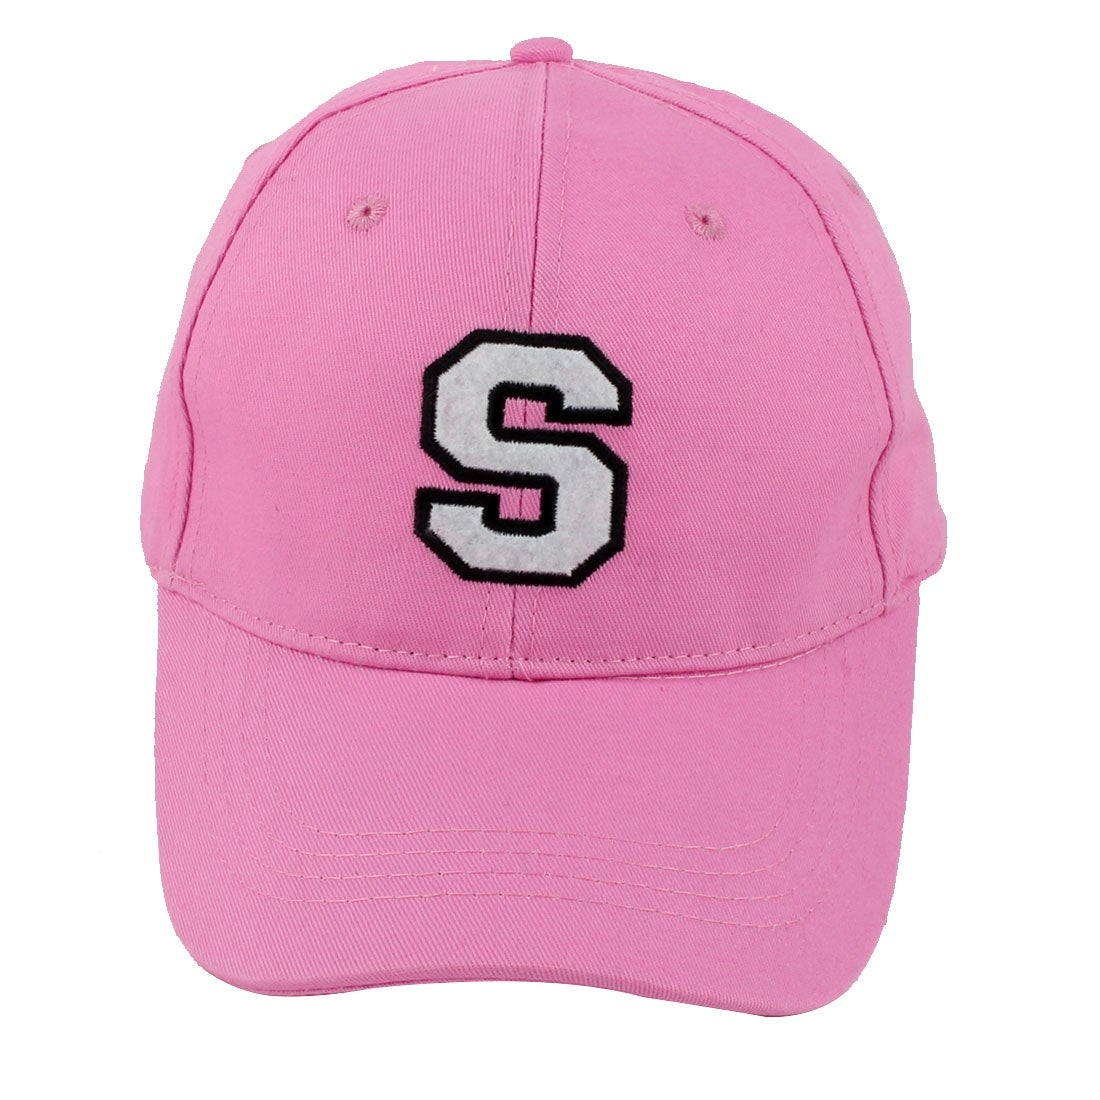 pretty nice 906c9 73820 Shop Woman Cotton Blends Letter Pattern Adjustable Baseball Cap Snapback Hat  Pink - On Sale - Free Shipping On Orders Over  45 - Overstock - 18398928